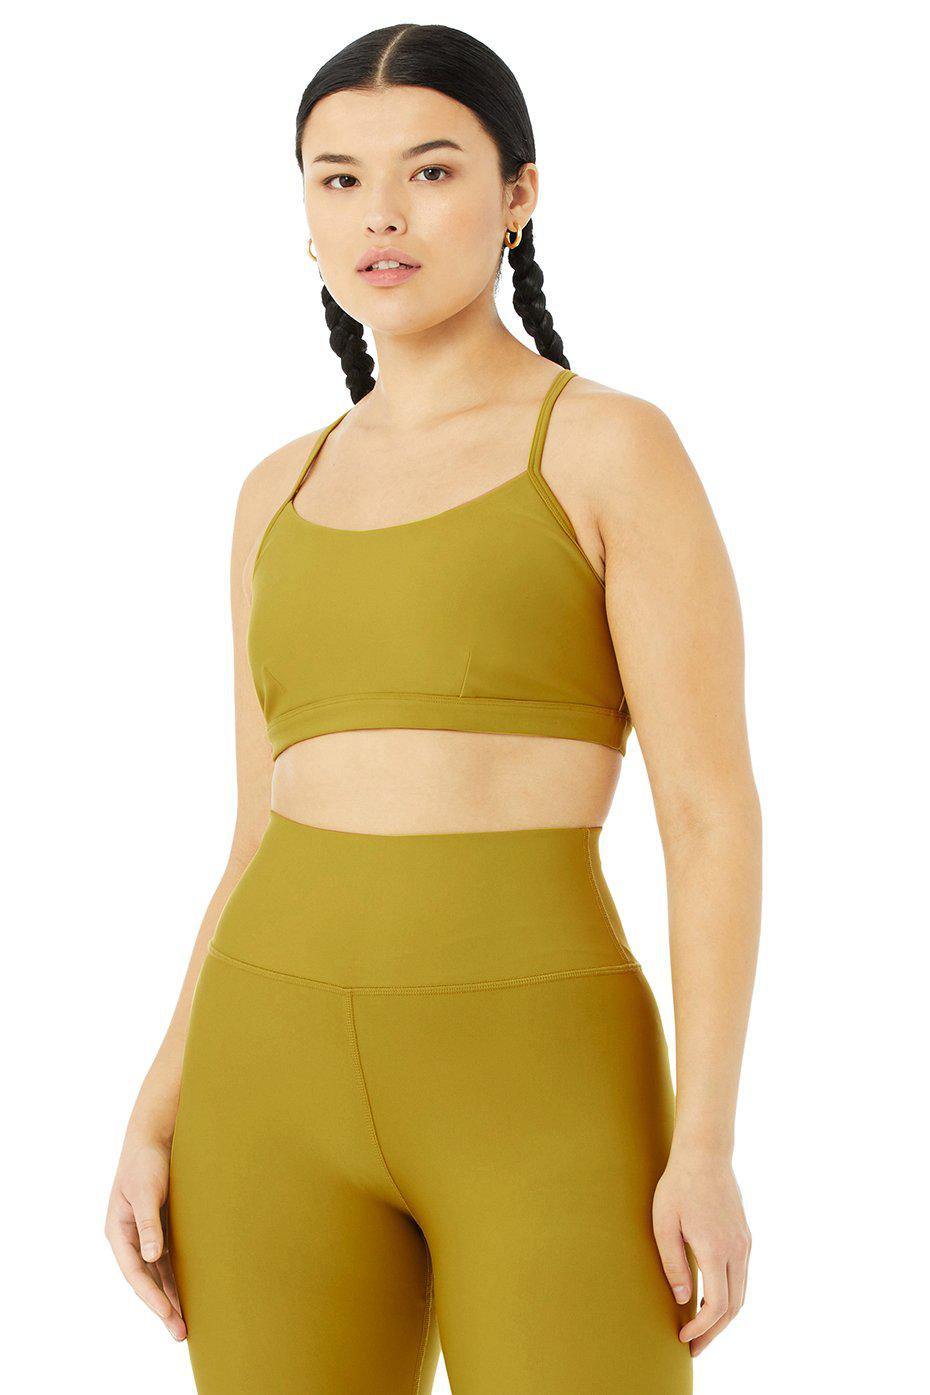 Airlift Intrigue Bra - Chartreuse 8